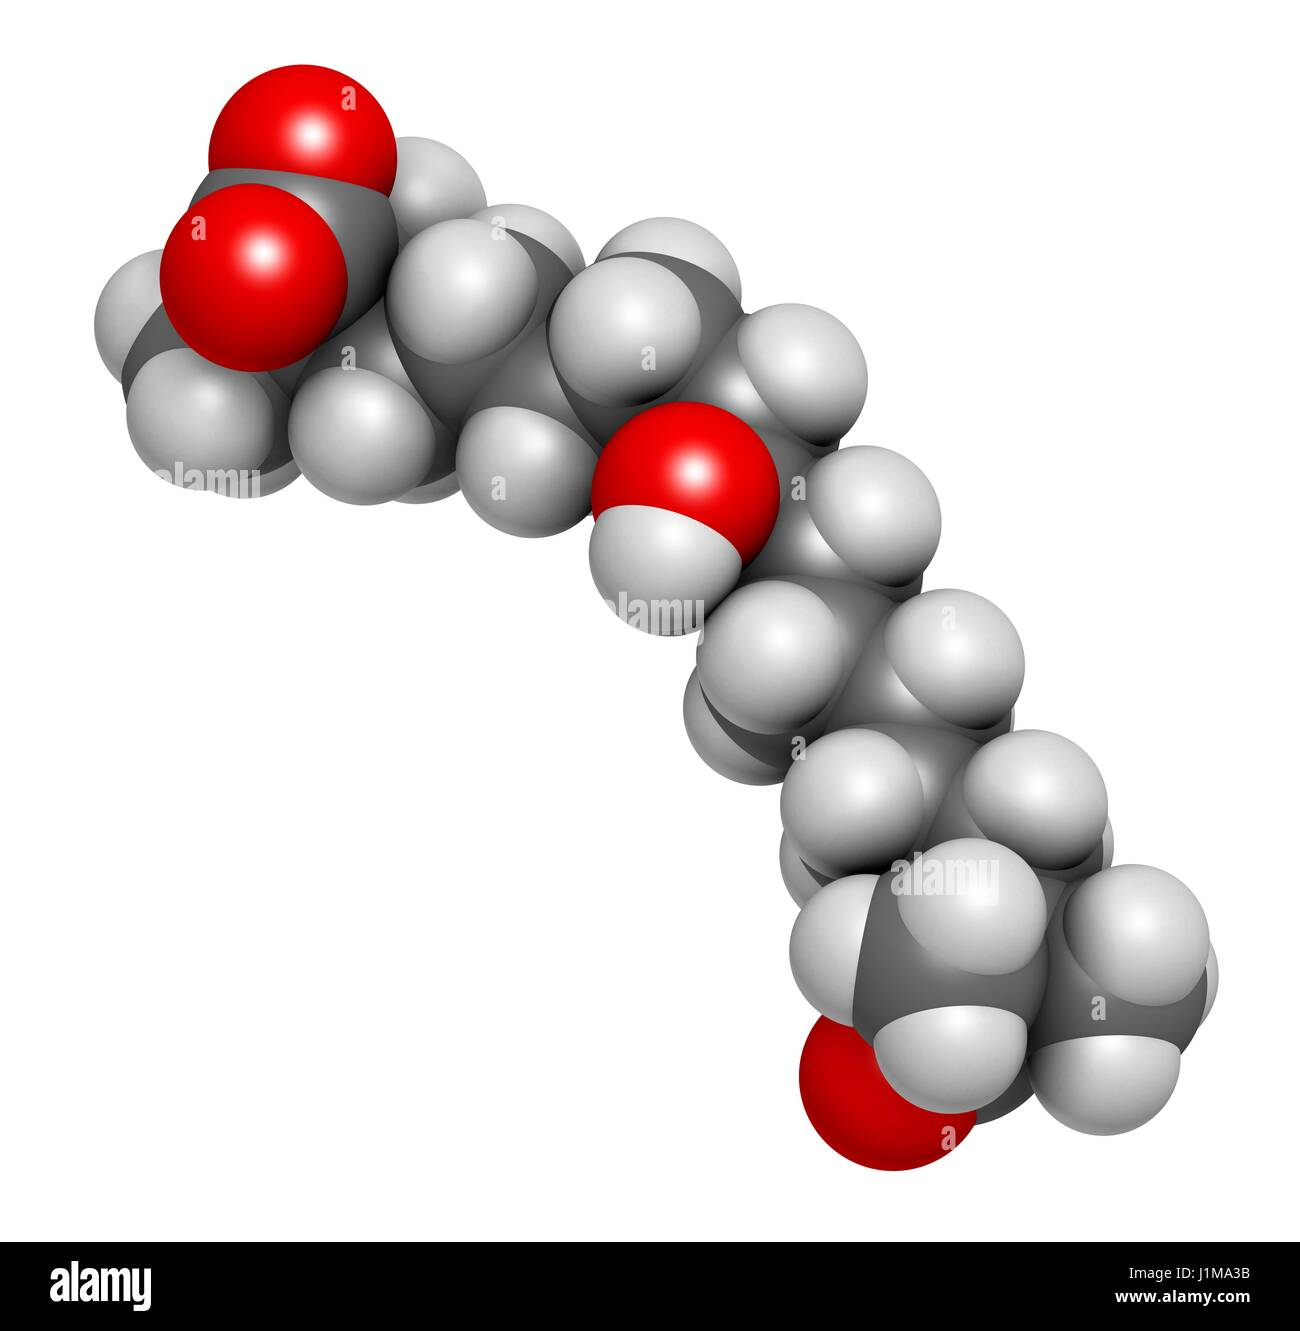 adp molecule diagram labeled 1996 ezgo txt gas wiring atp stock photos and images alamy